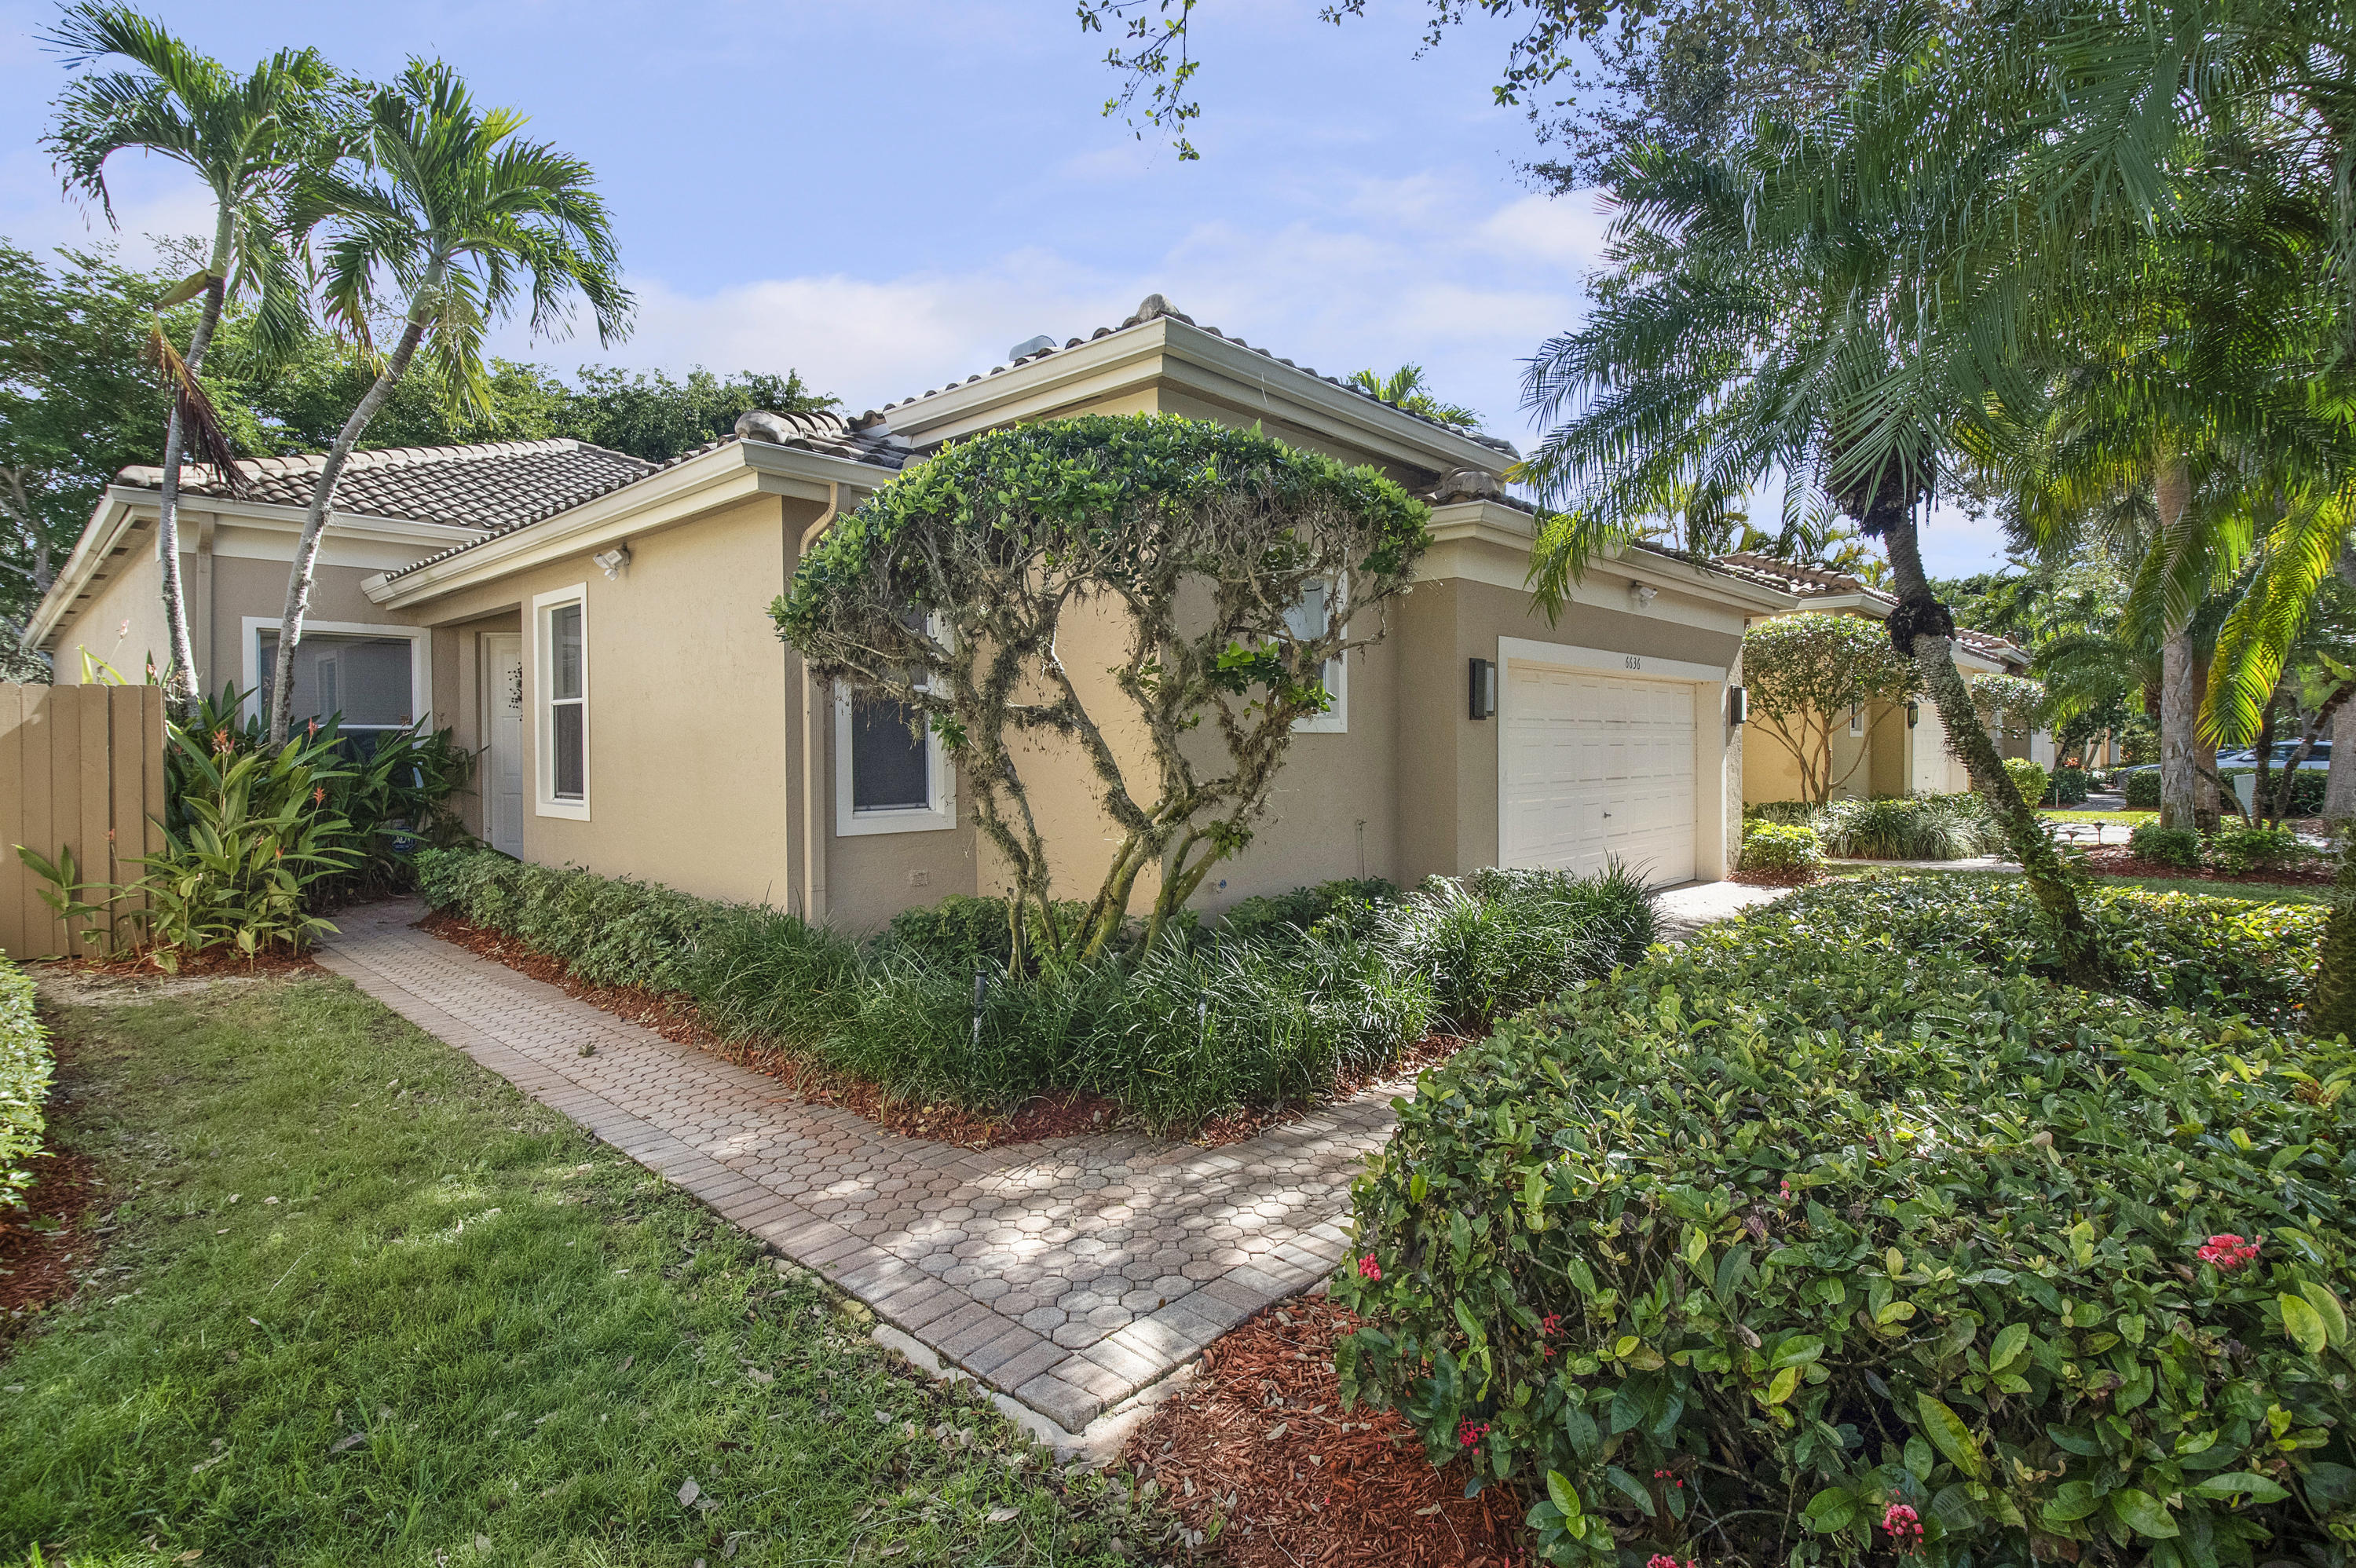 Details for 6636 23rd Ter Nw, Boca Raton, FL 33496